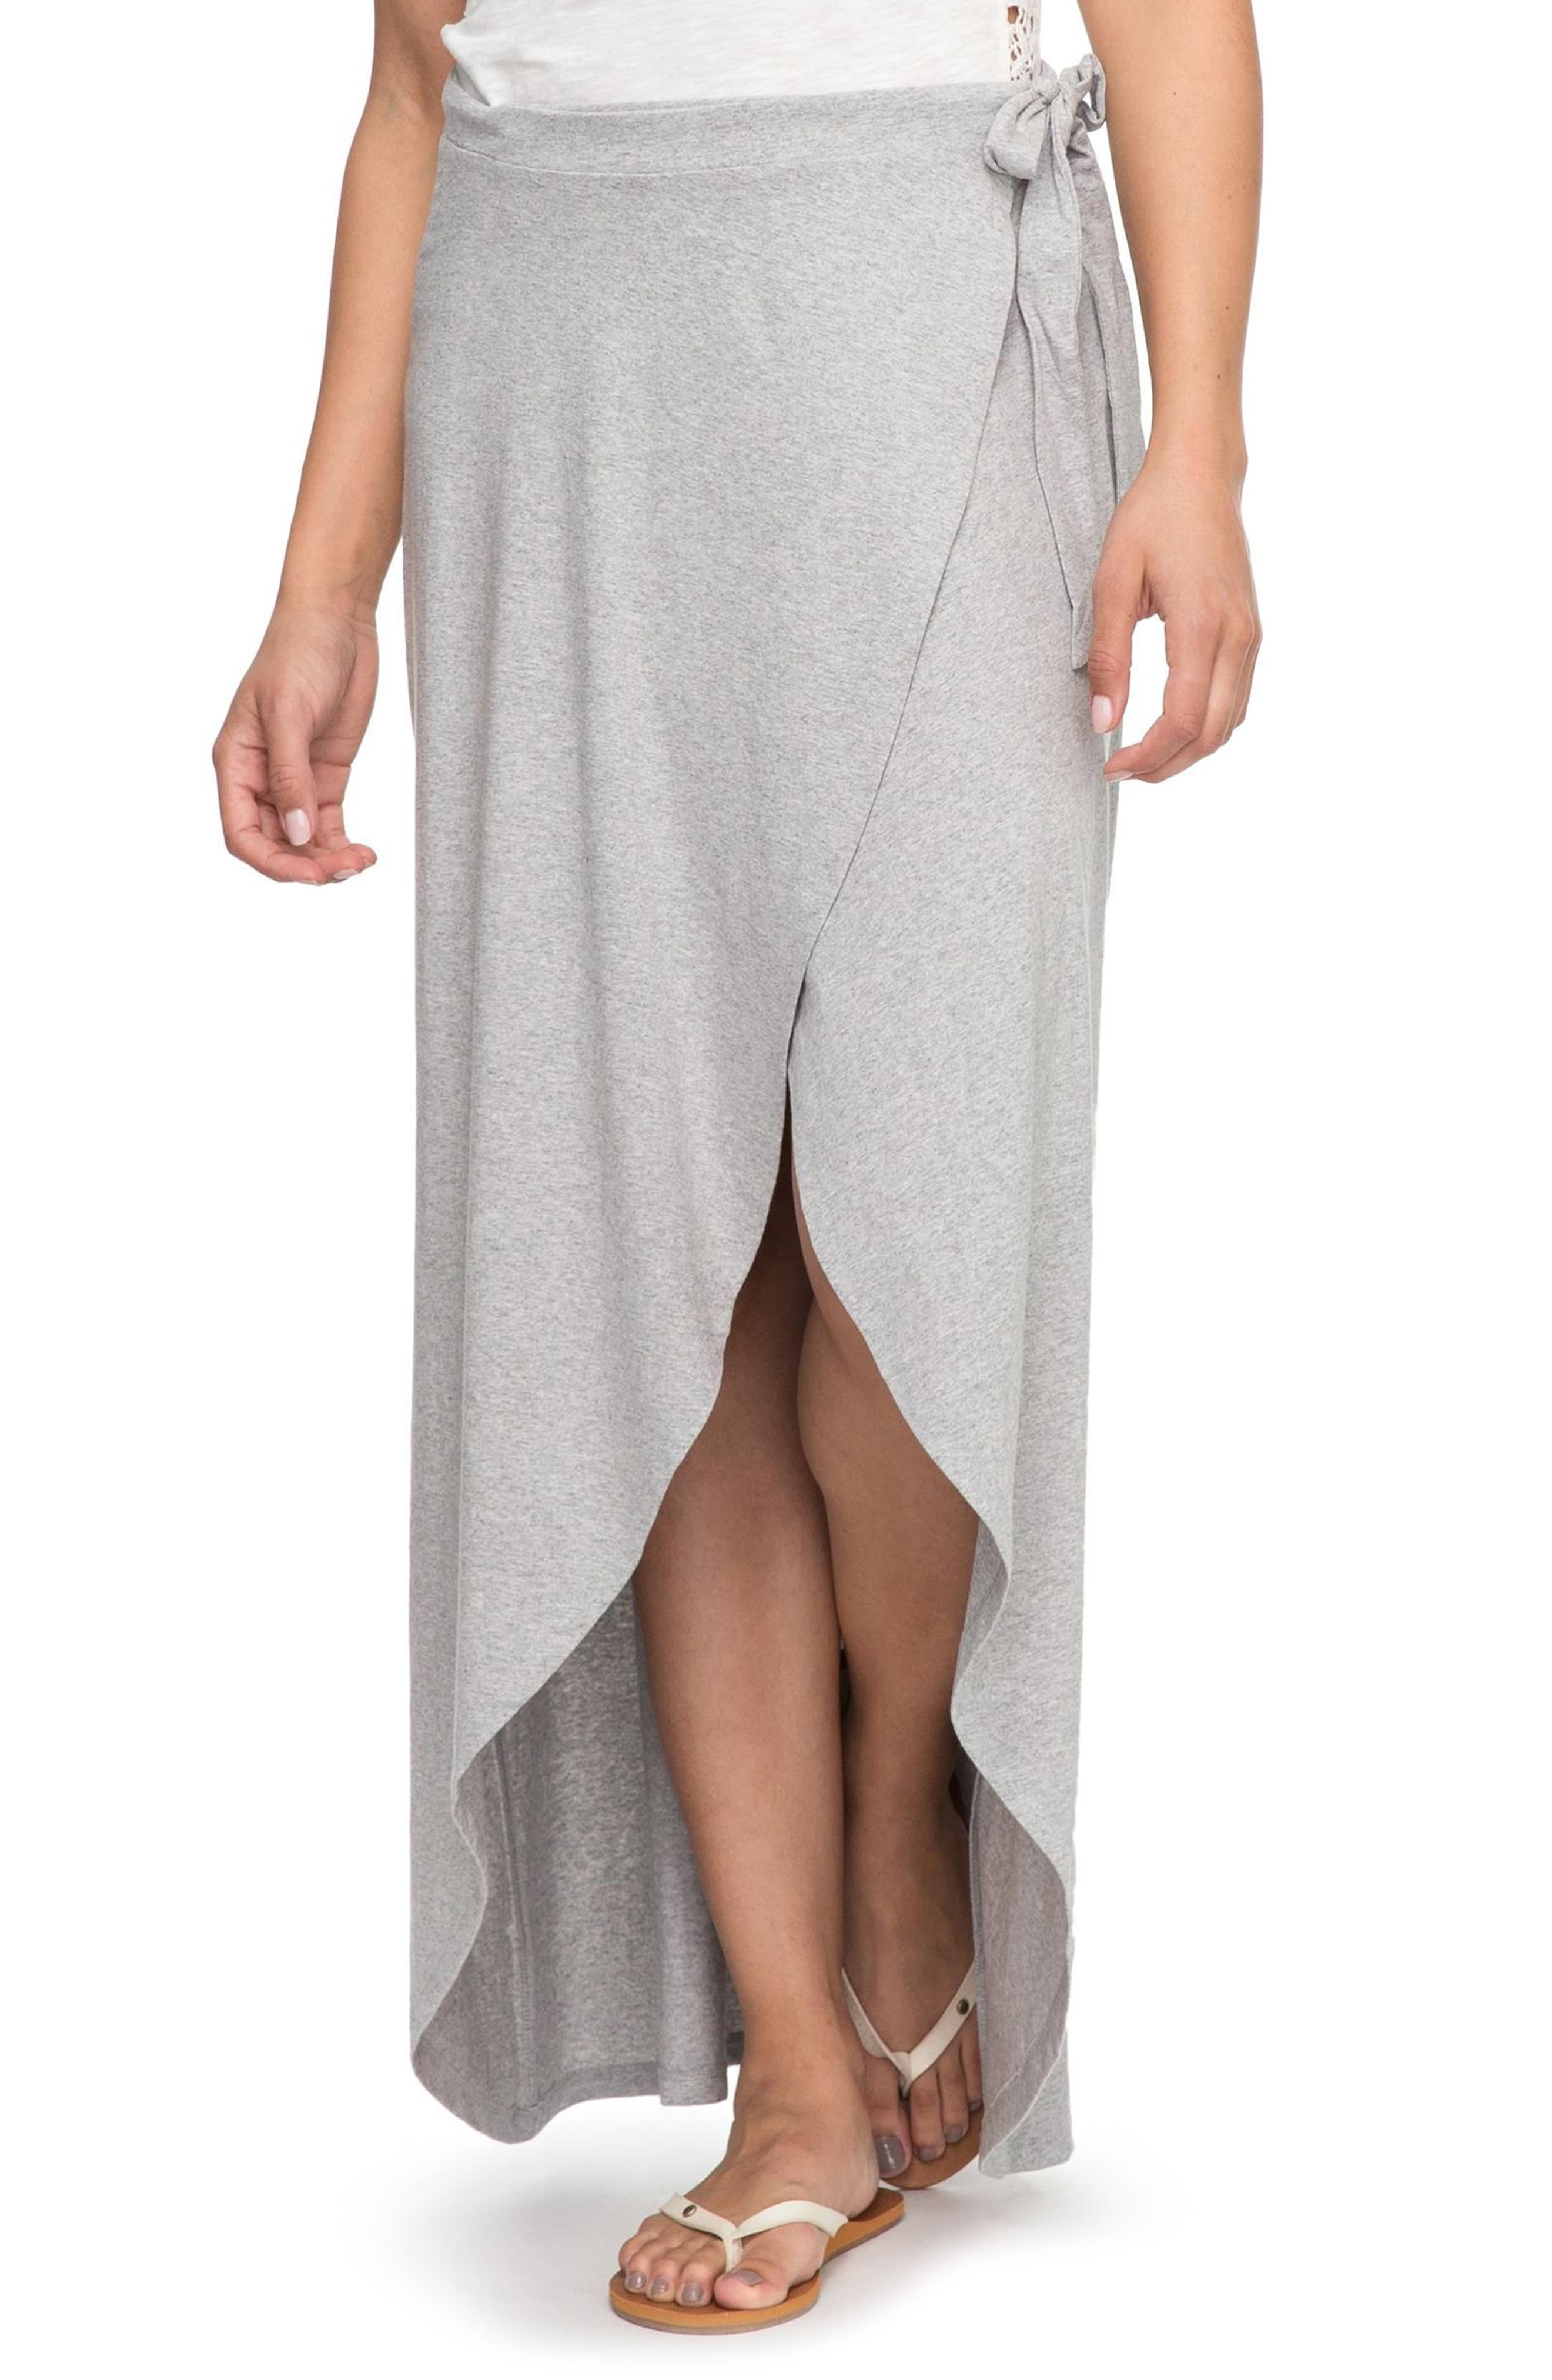 Everlasting Afternoon Long Wrap Skirt,                             Main thumbnail 1, color,                             Heritage Heather